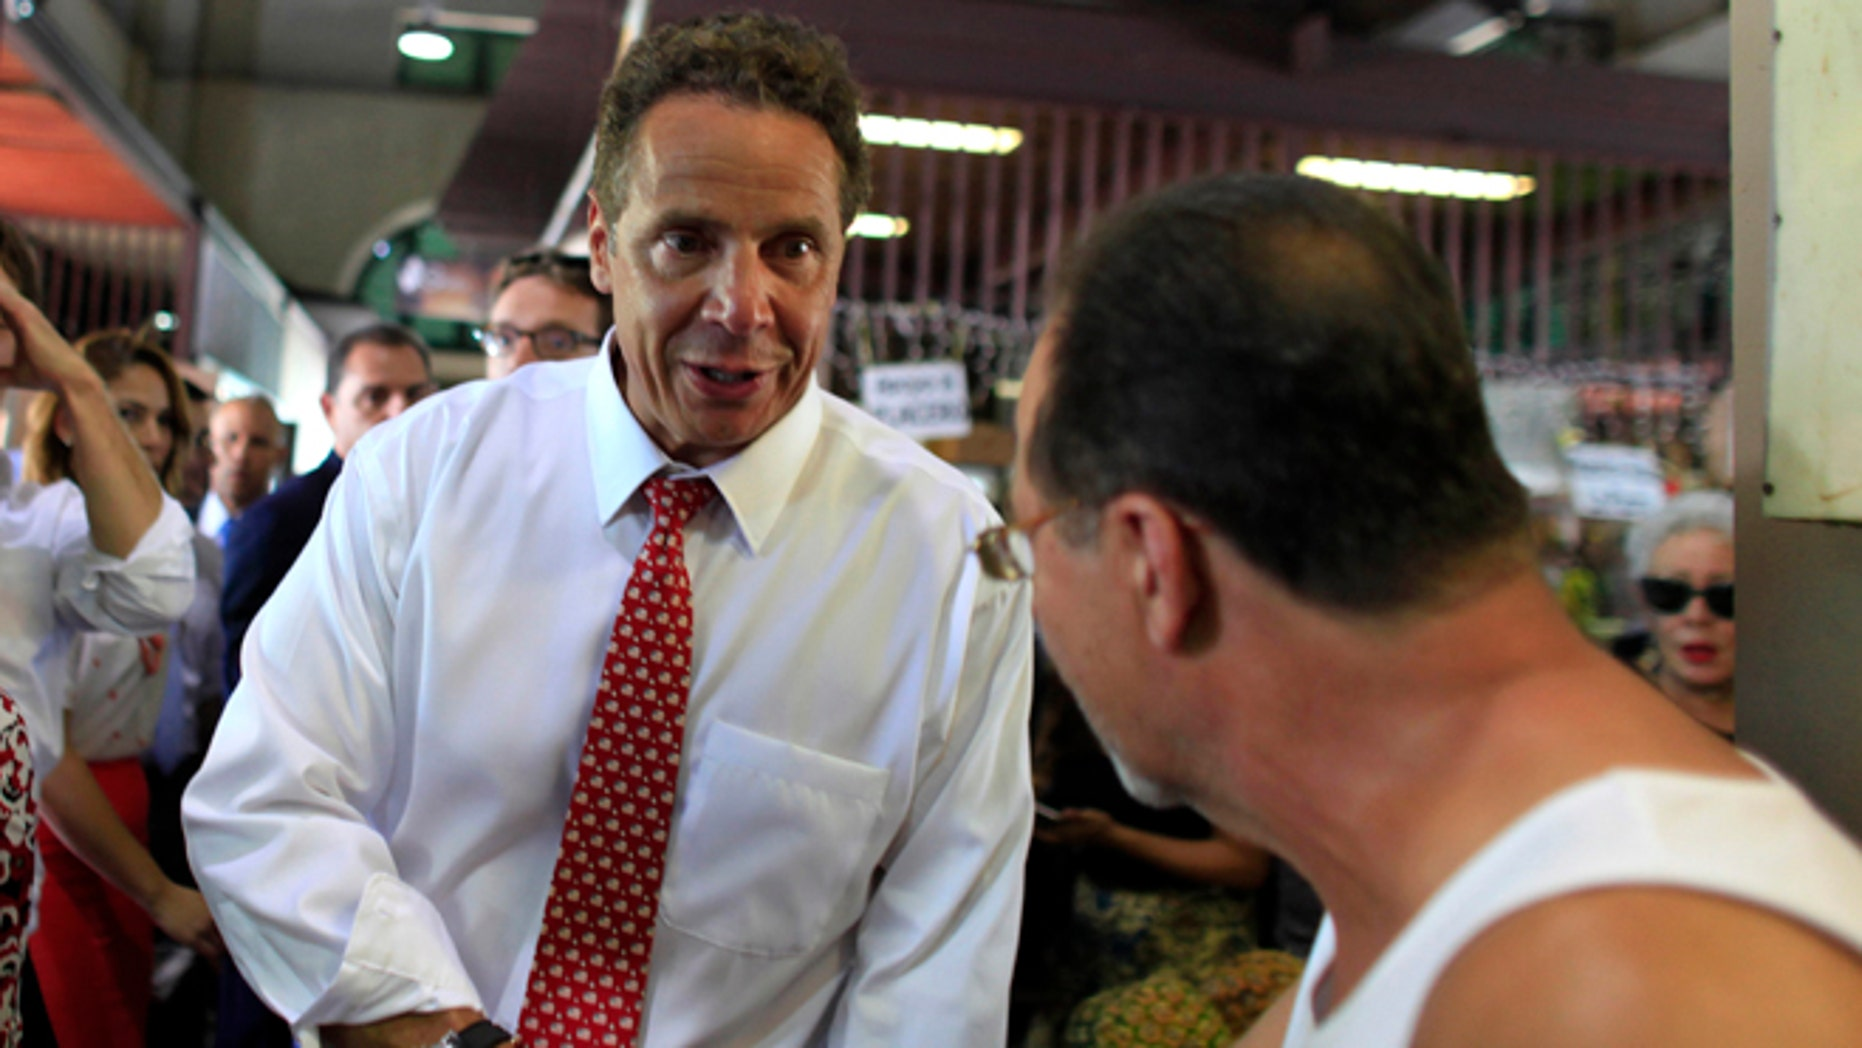 New York Gov. Andrew Cuomo greets a bystander during a visit to a local market in San Juan, Puerto Rico, Tuesday, Sept. 8, 2015. Cuomo and a delegation of top state officials met with Puerto Rico's Gov. Alejandro Garcia Padilla, pictured left, on Tuesday to develop what he called a historic partnership with the U.S. territory to help it emerge from a deepening economic crisis. (AP Photo/Ricardo Arduengo)